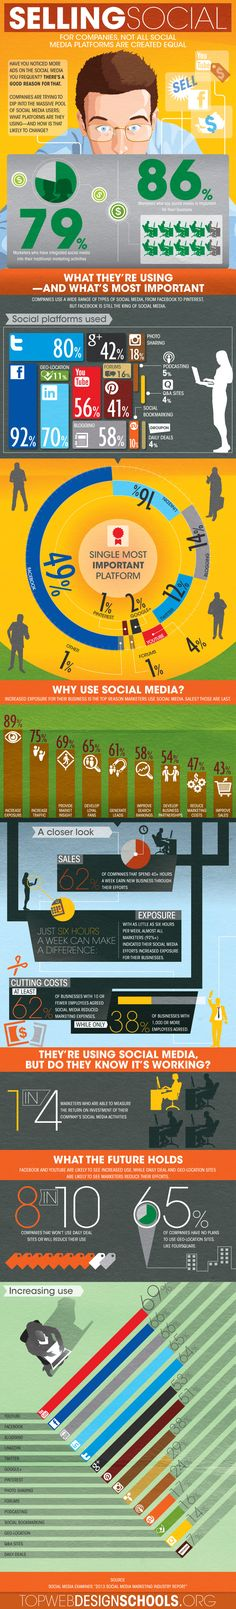 Selling Social: How Companies Are Connecting with Social Media (INFOGRAPHIC)